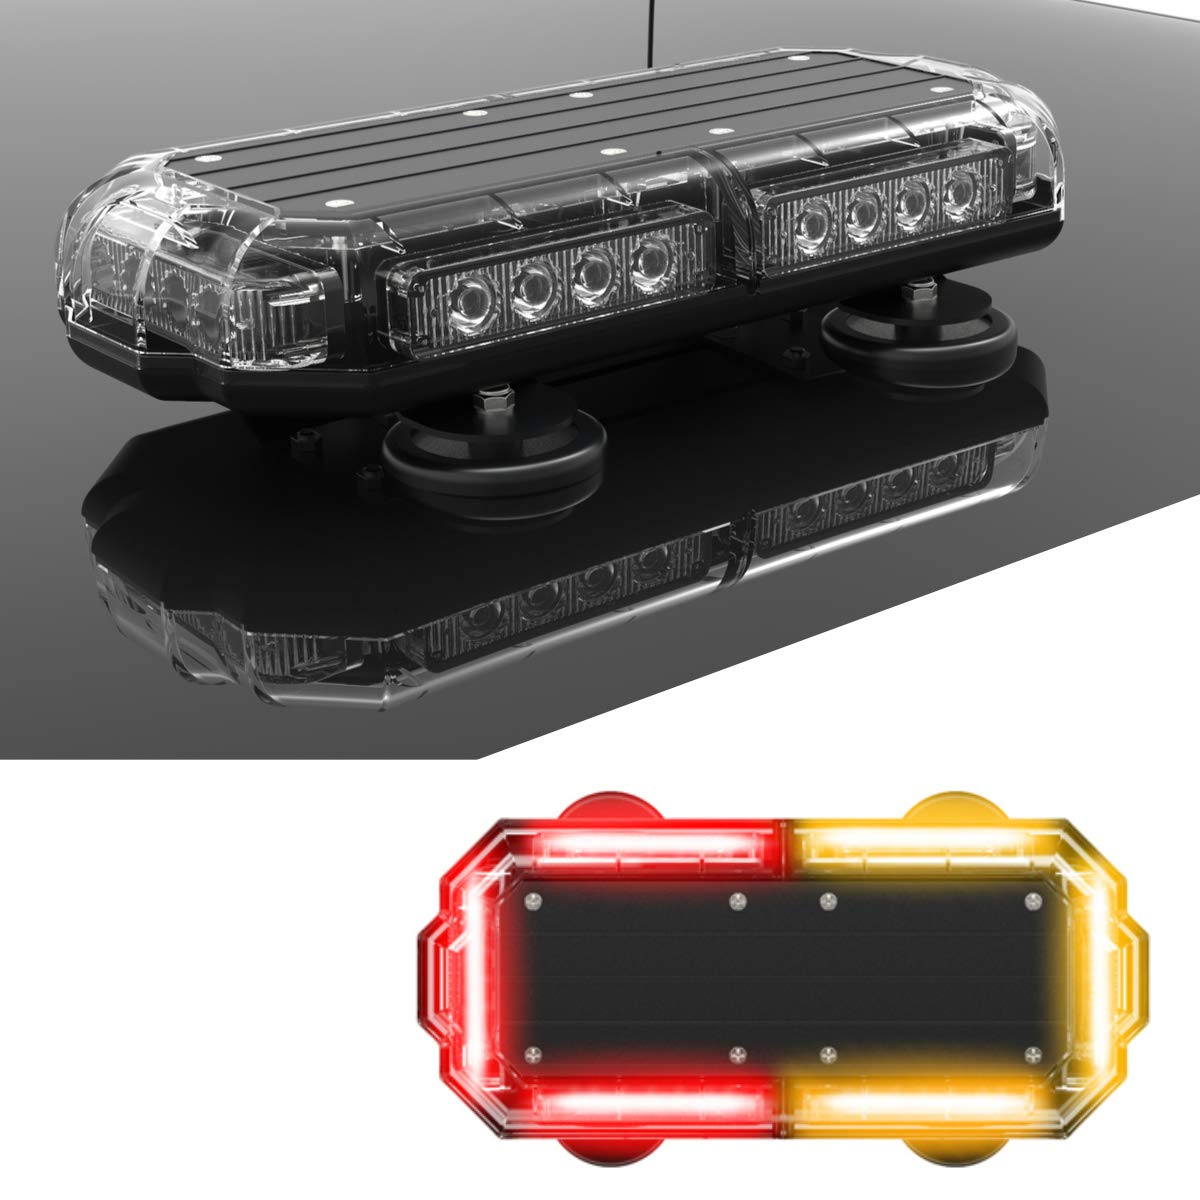 SpeedTech Lights Mini 14 72 Watts LED Strobe Lights for Trucks Plows and Emergency Vehicles with Magnetic Roof Mount in Red//Blue Cars